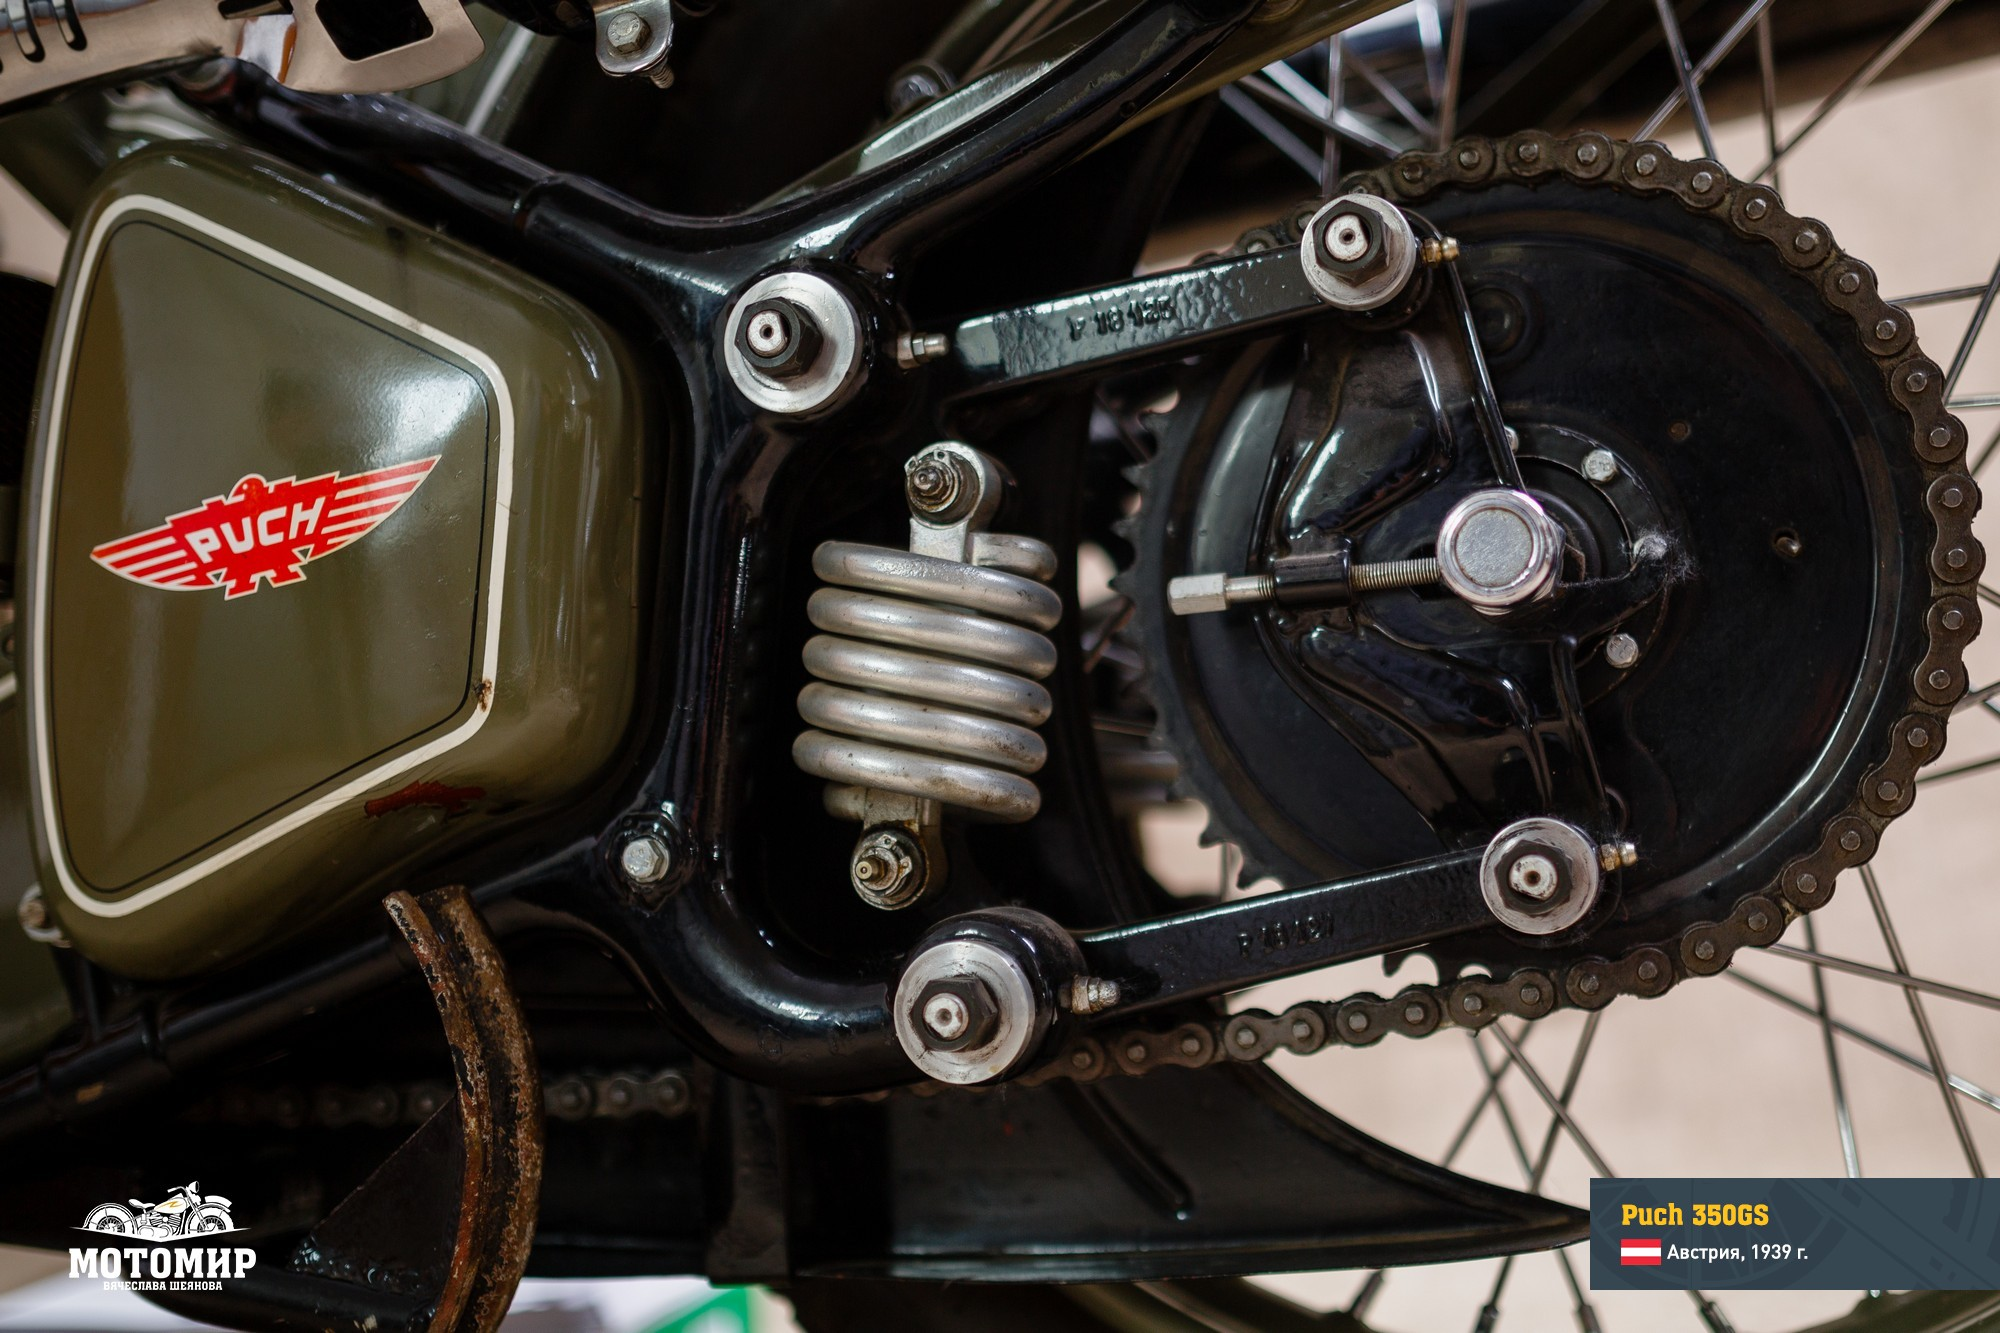 puch-350gs-201601-web-23